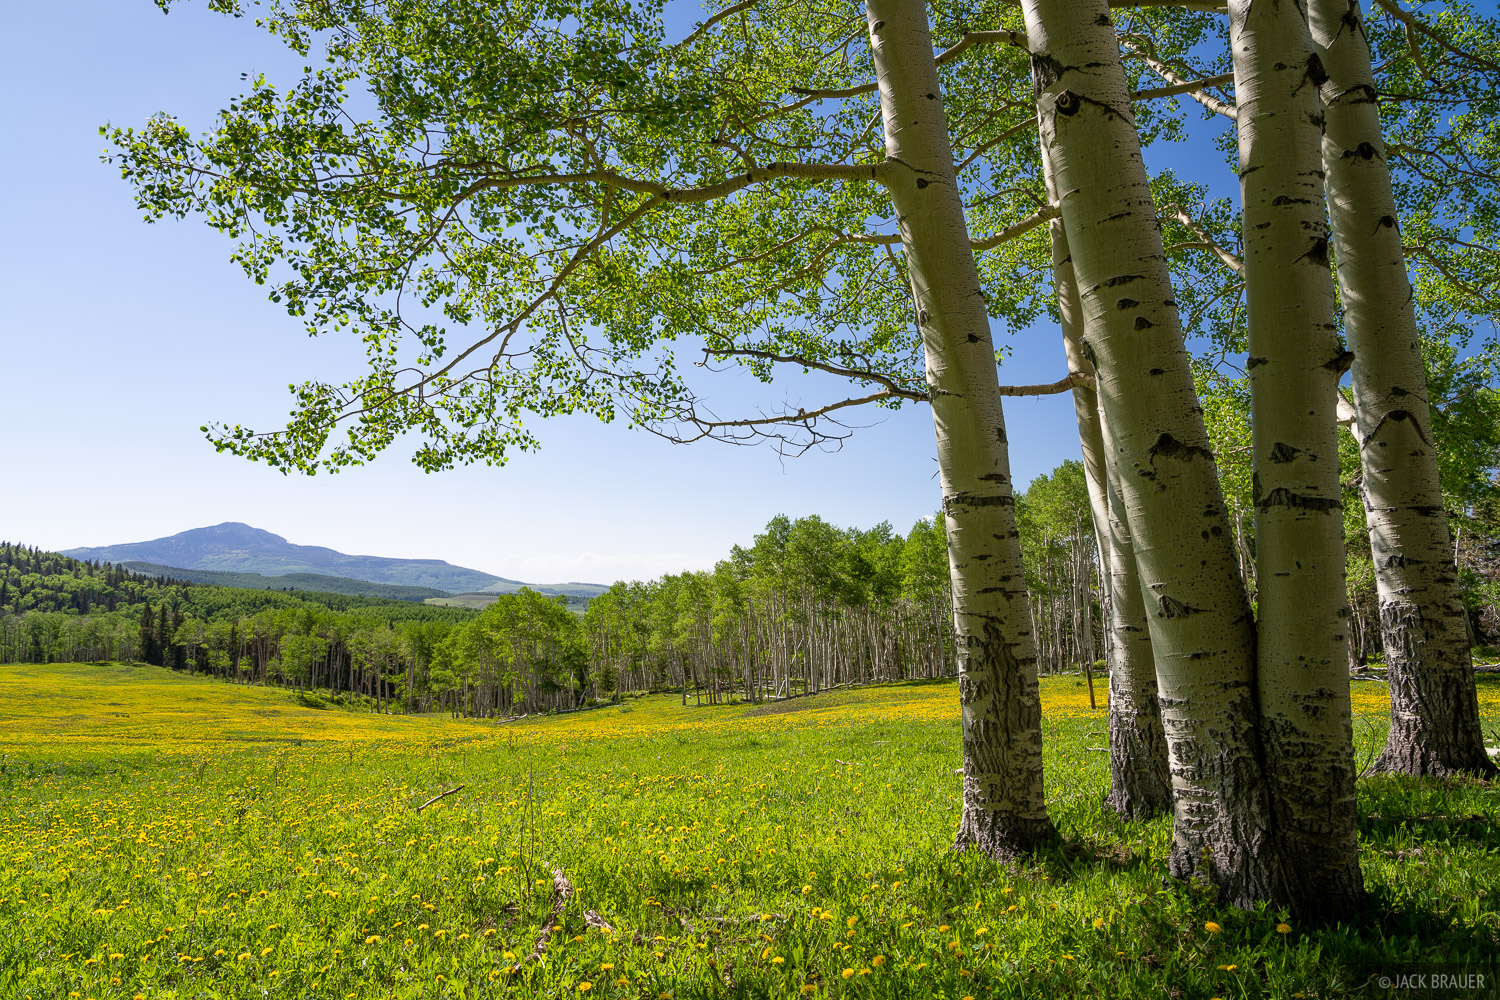 Aspens provide a pleasant shady place to sit next to a dandelion-filled meadow on a warm spring day.